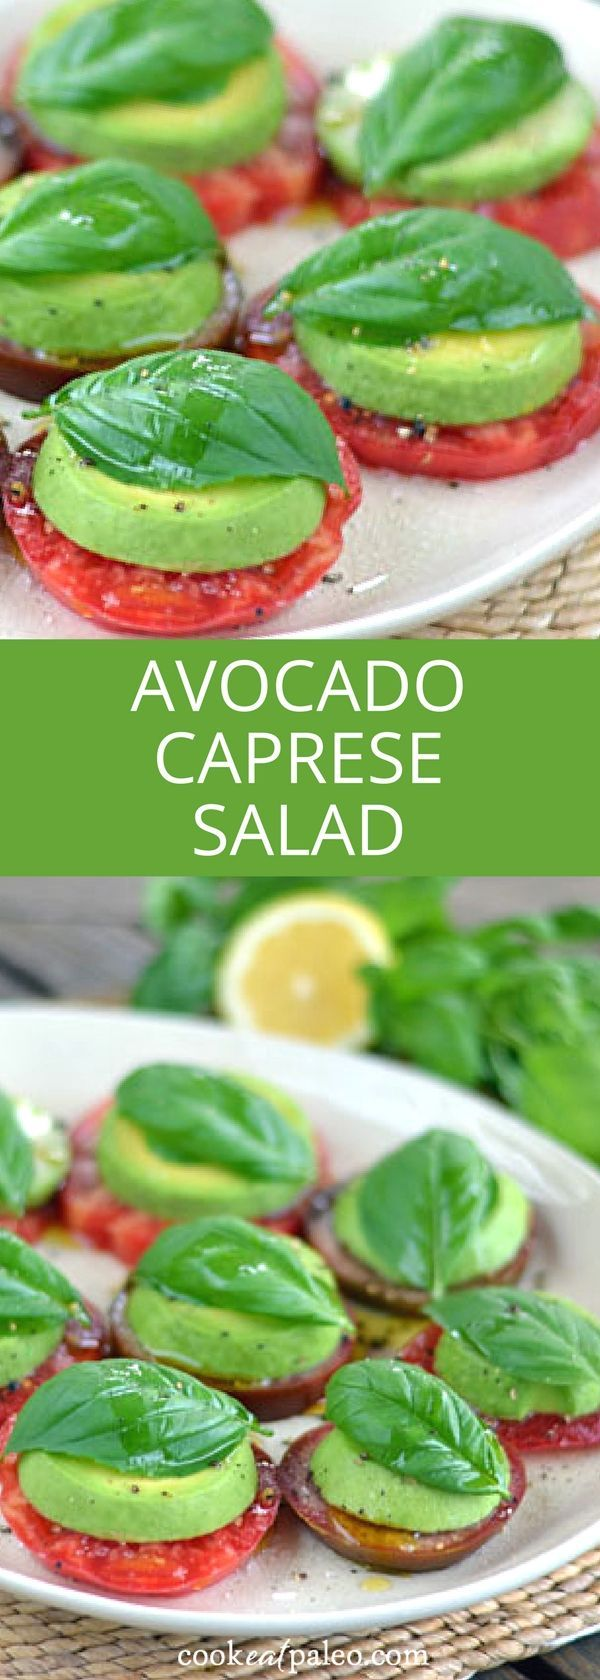 Avocado Caprese salad is a paleo take on a Caprese salad with tomatoes and basil…